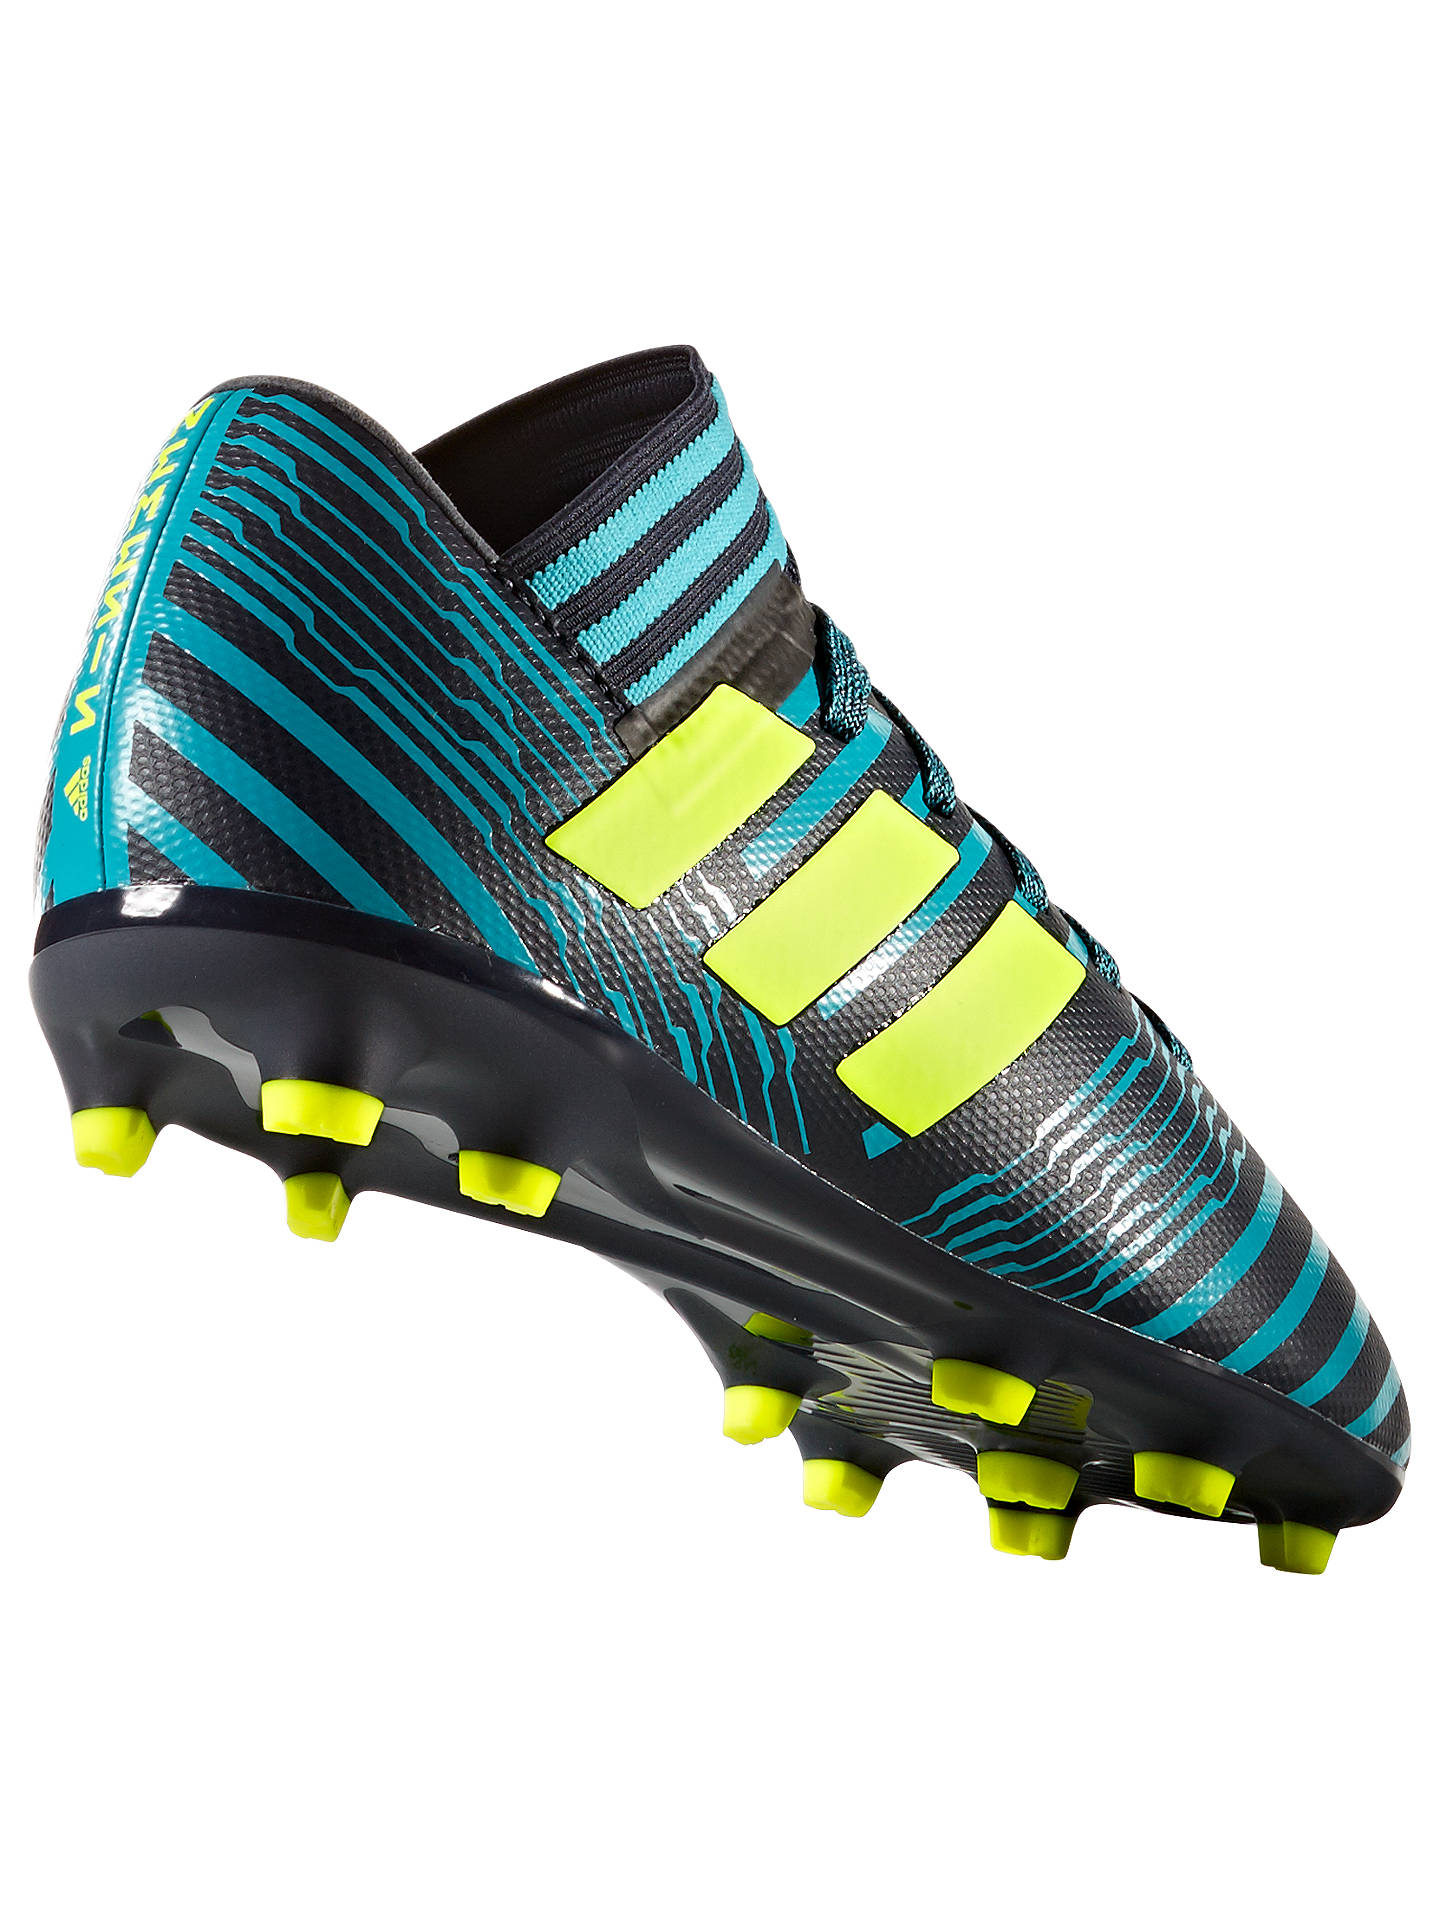 006f6dc72026 ... Buy adidas Children s Nemeziz 17.3 FG Football Boots